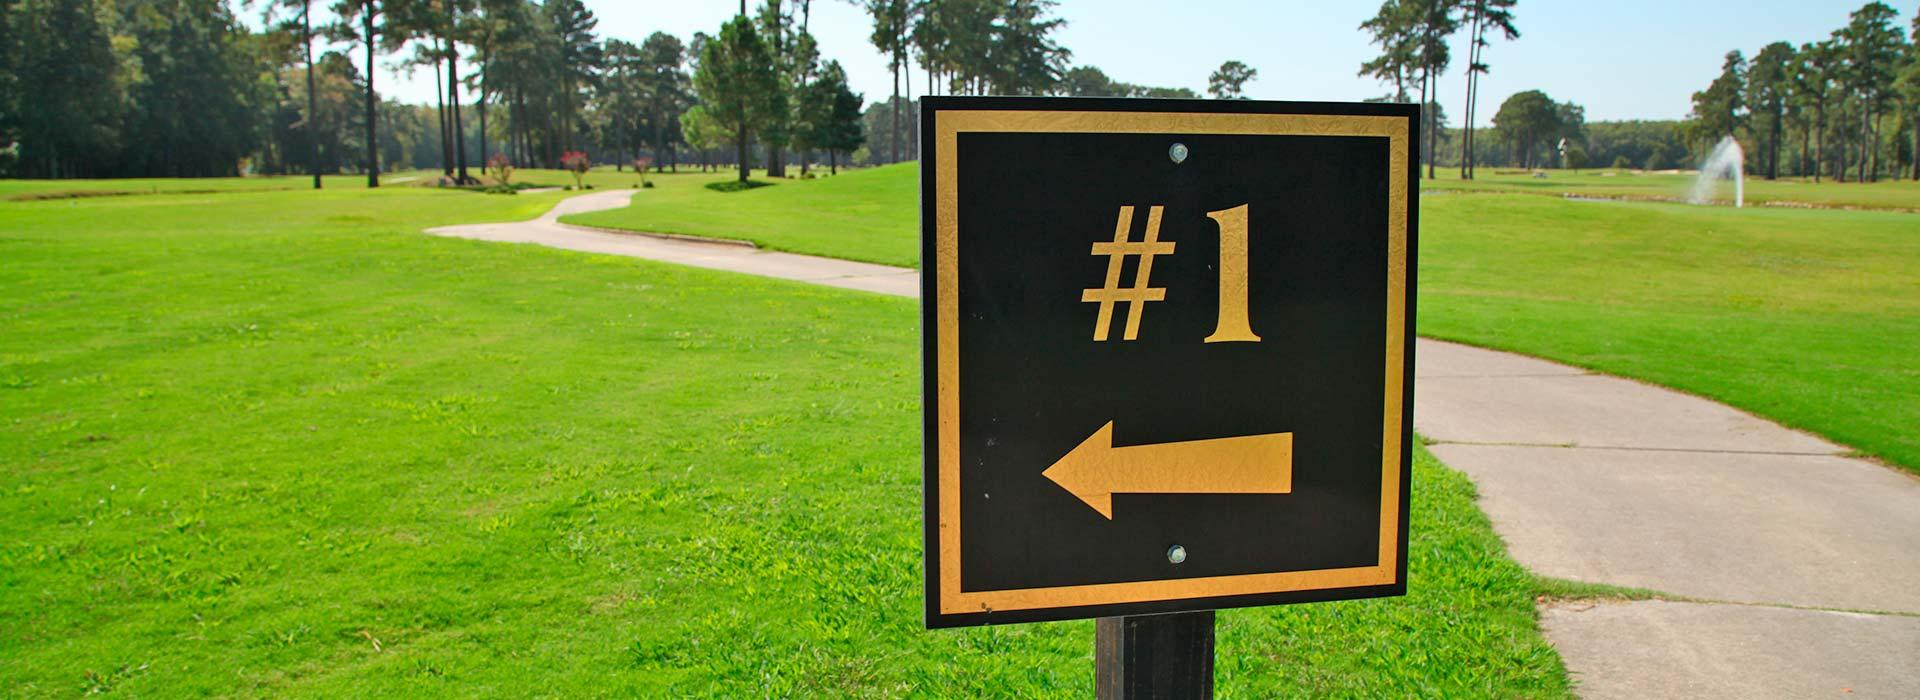 Hole sign at YMCA of the Pines golf course in Elizabeth City, NC